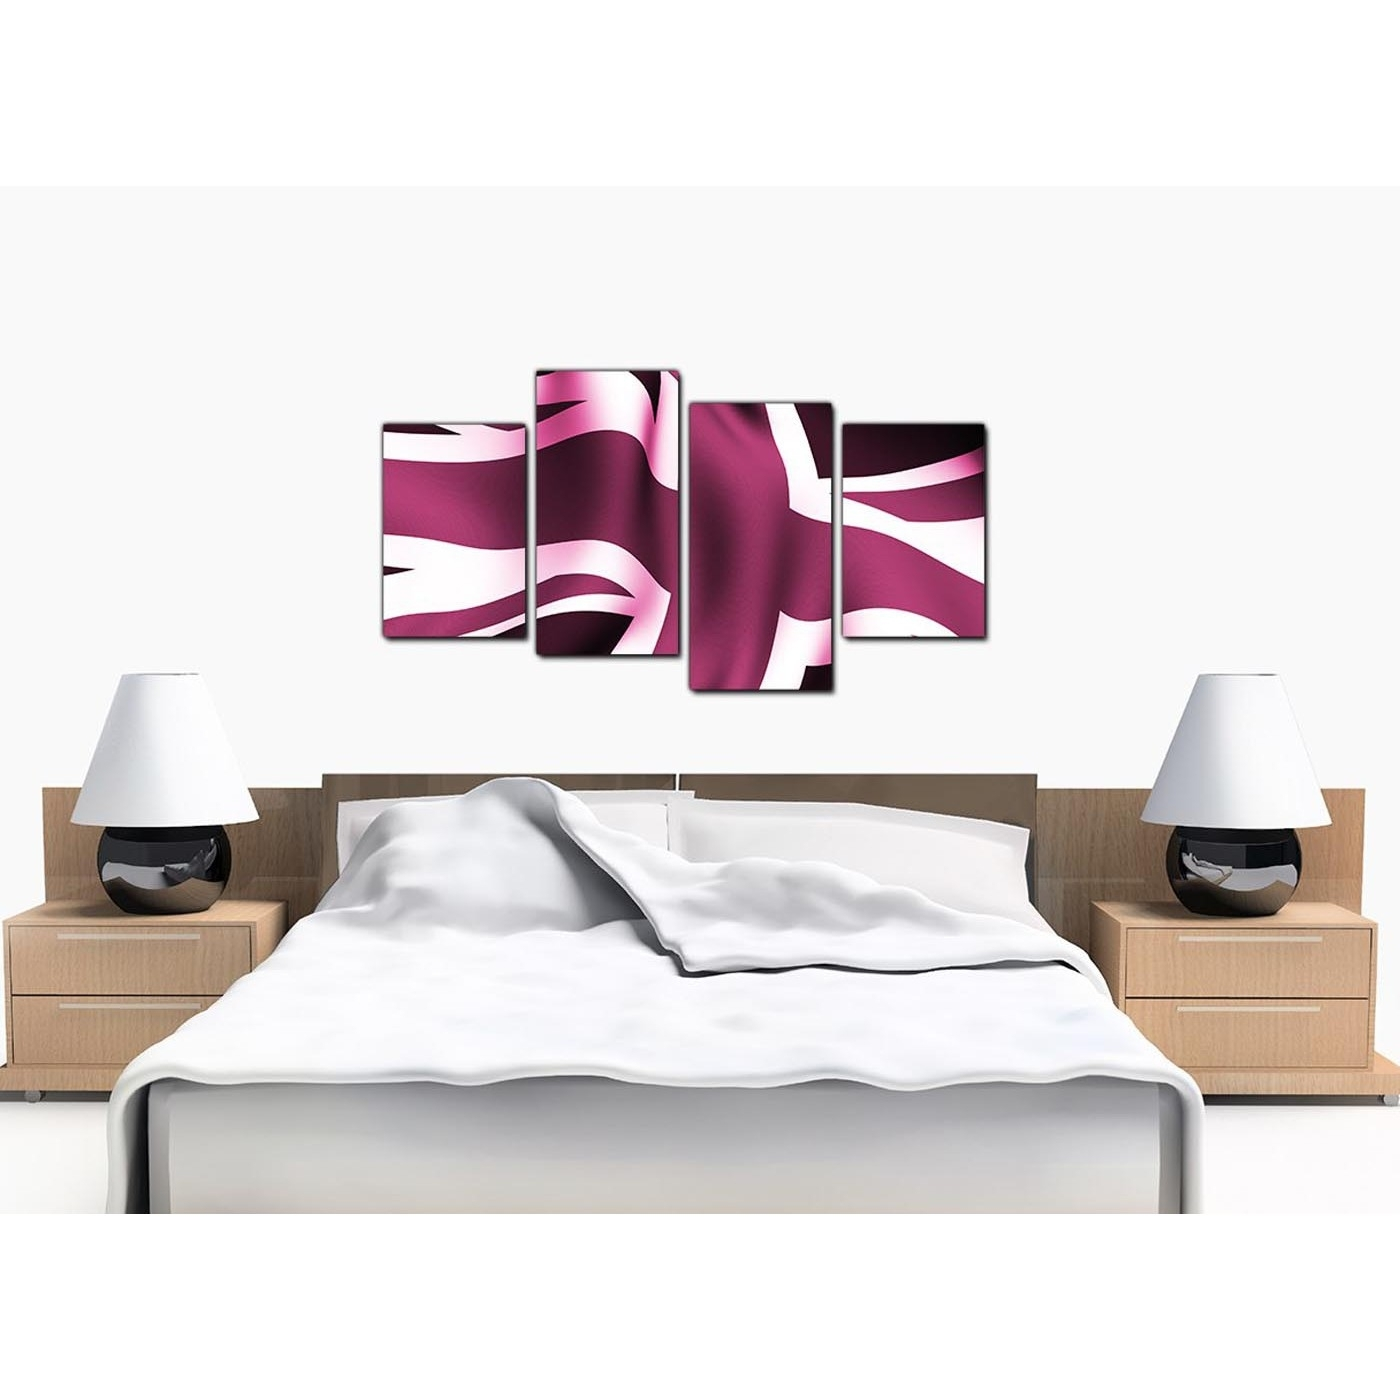 Modern Union Jack Canvas Prints In Plum – For Bedroom Regarding Newest Union Jack Canvas Wall Art (View 8 of 15)